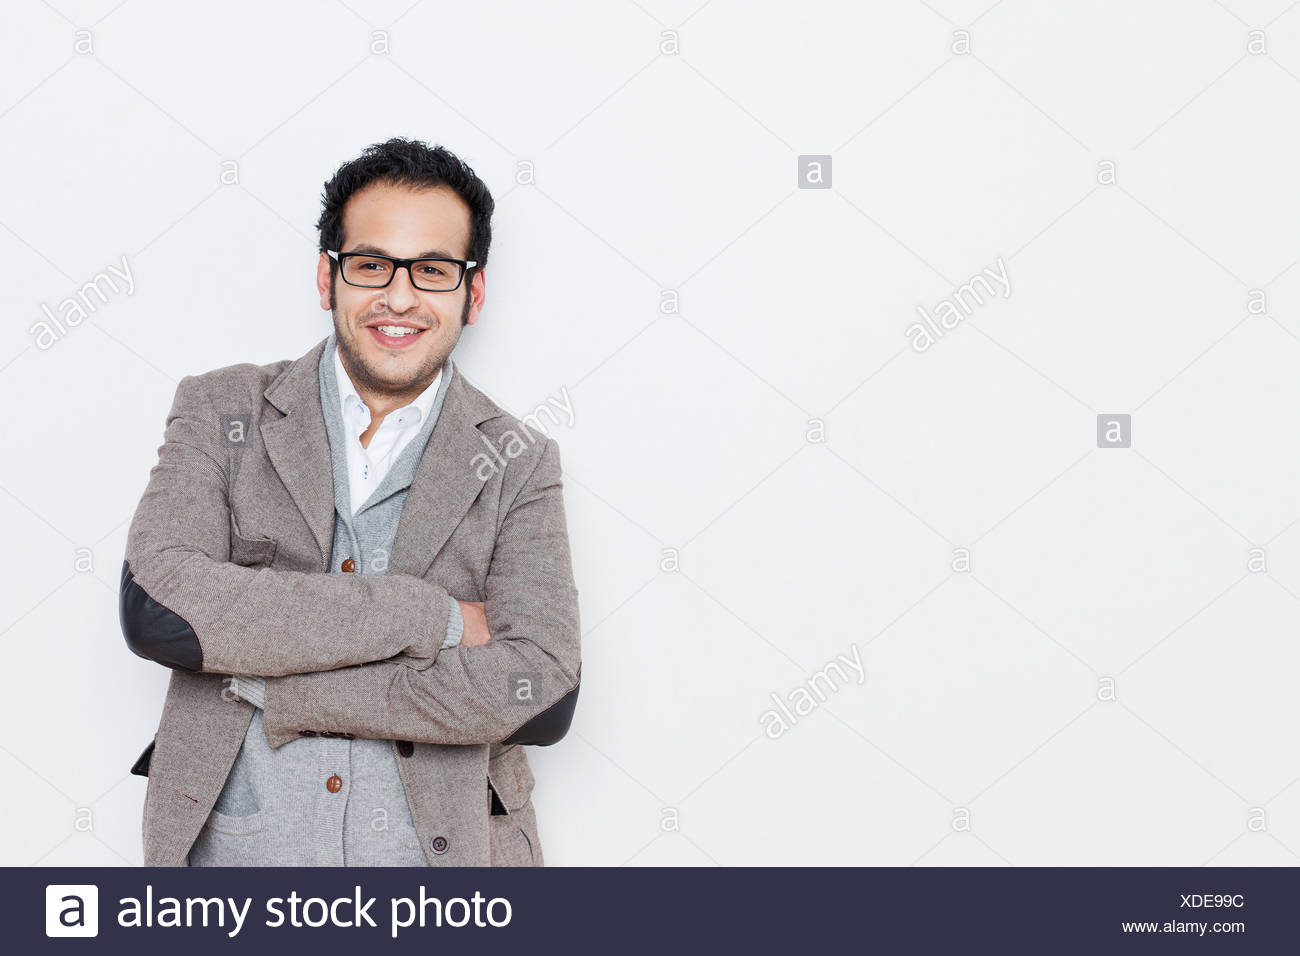 Businessman standing with arms folded - Stock Image